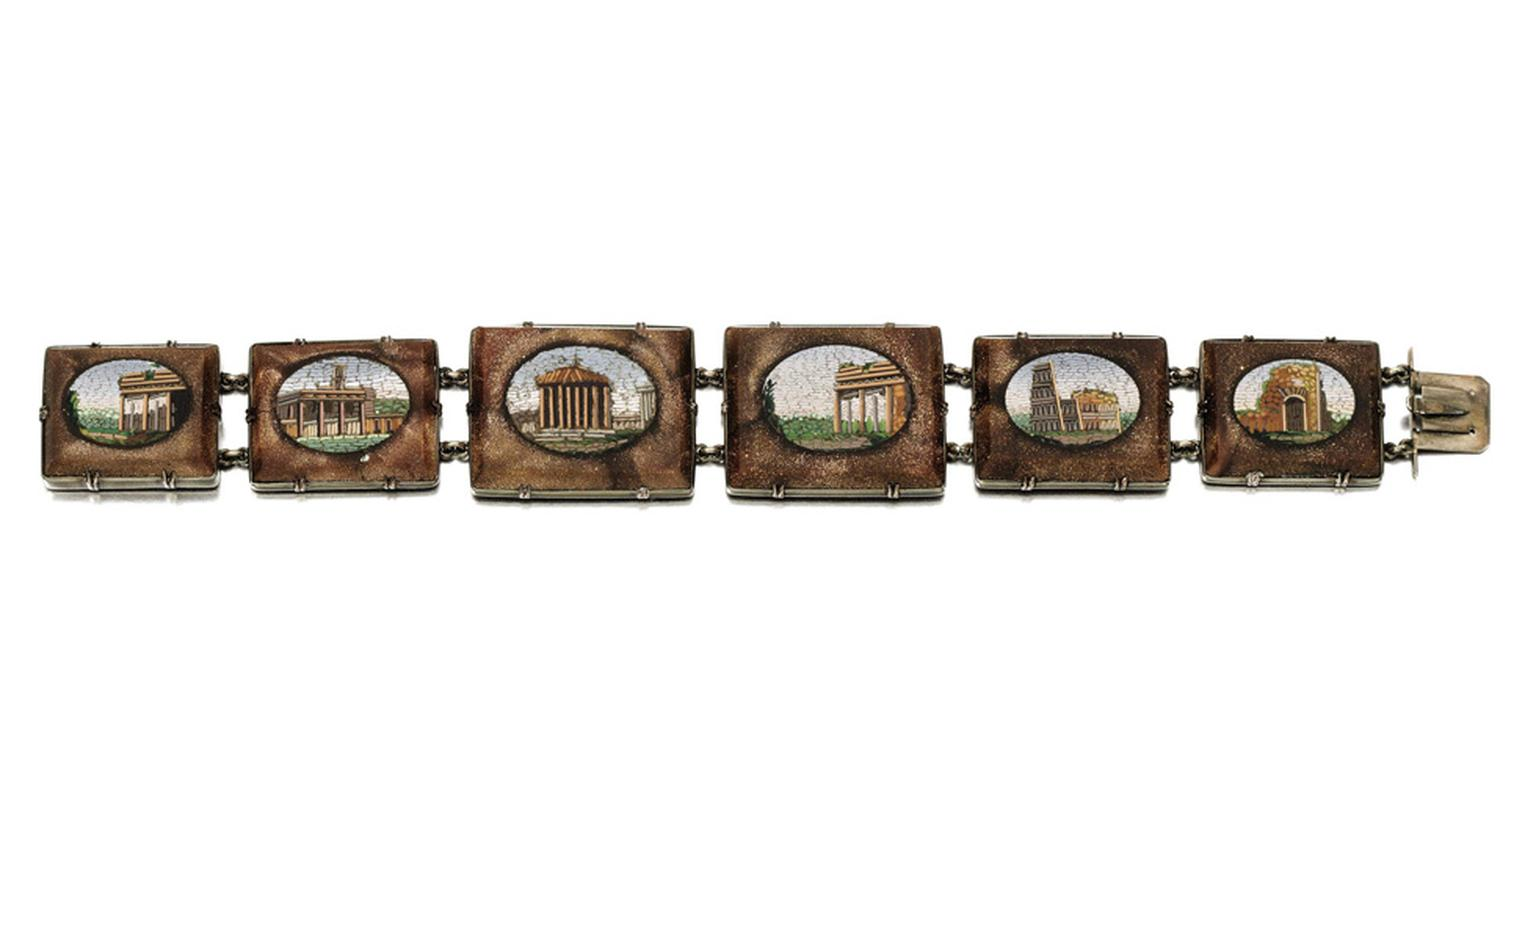 Lot 21. Gold and micromosaic bracelet, mid 19th Century. Estimate £3,000-£5,000